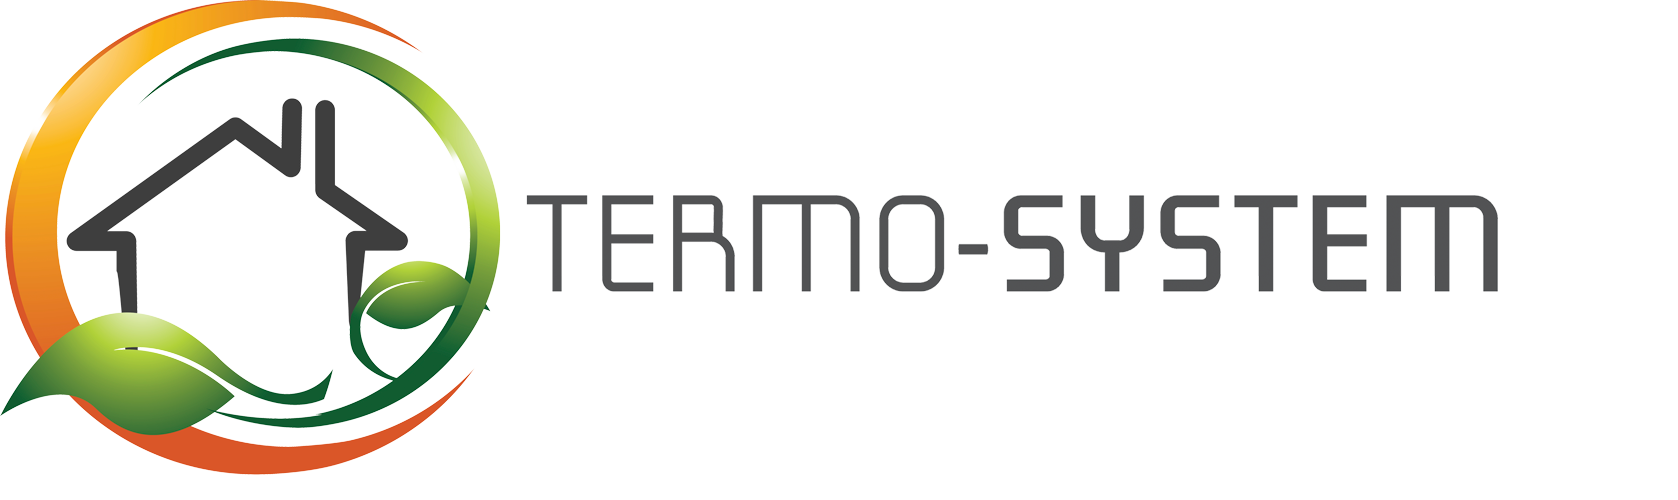 TERMO-SYSTEM